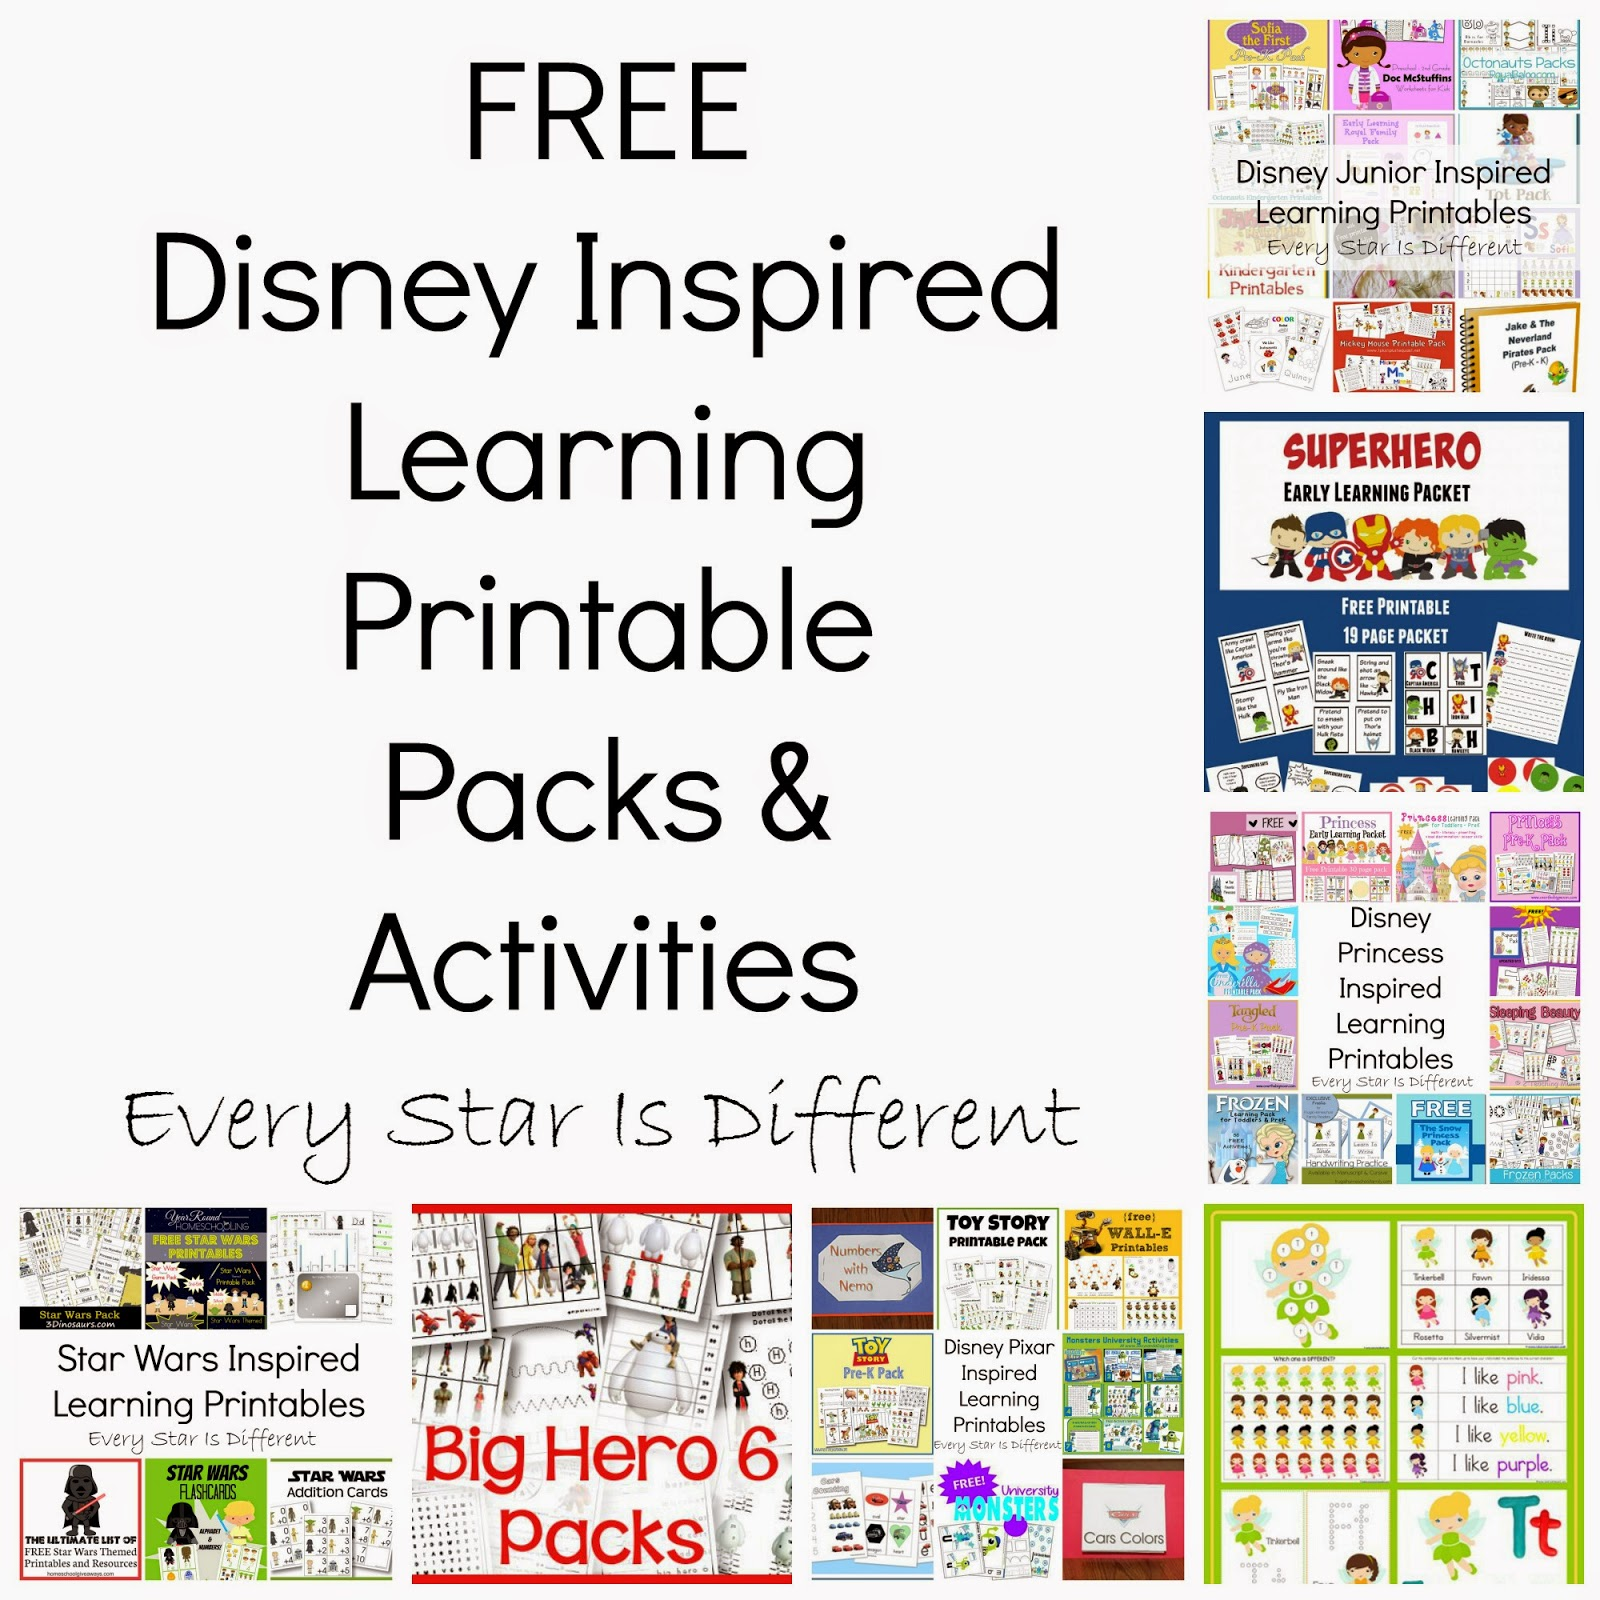 Free Disney Inspired Printables